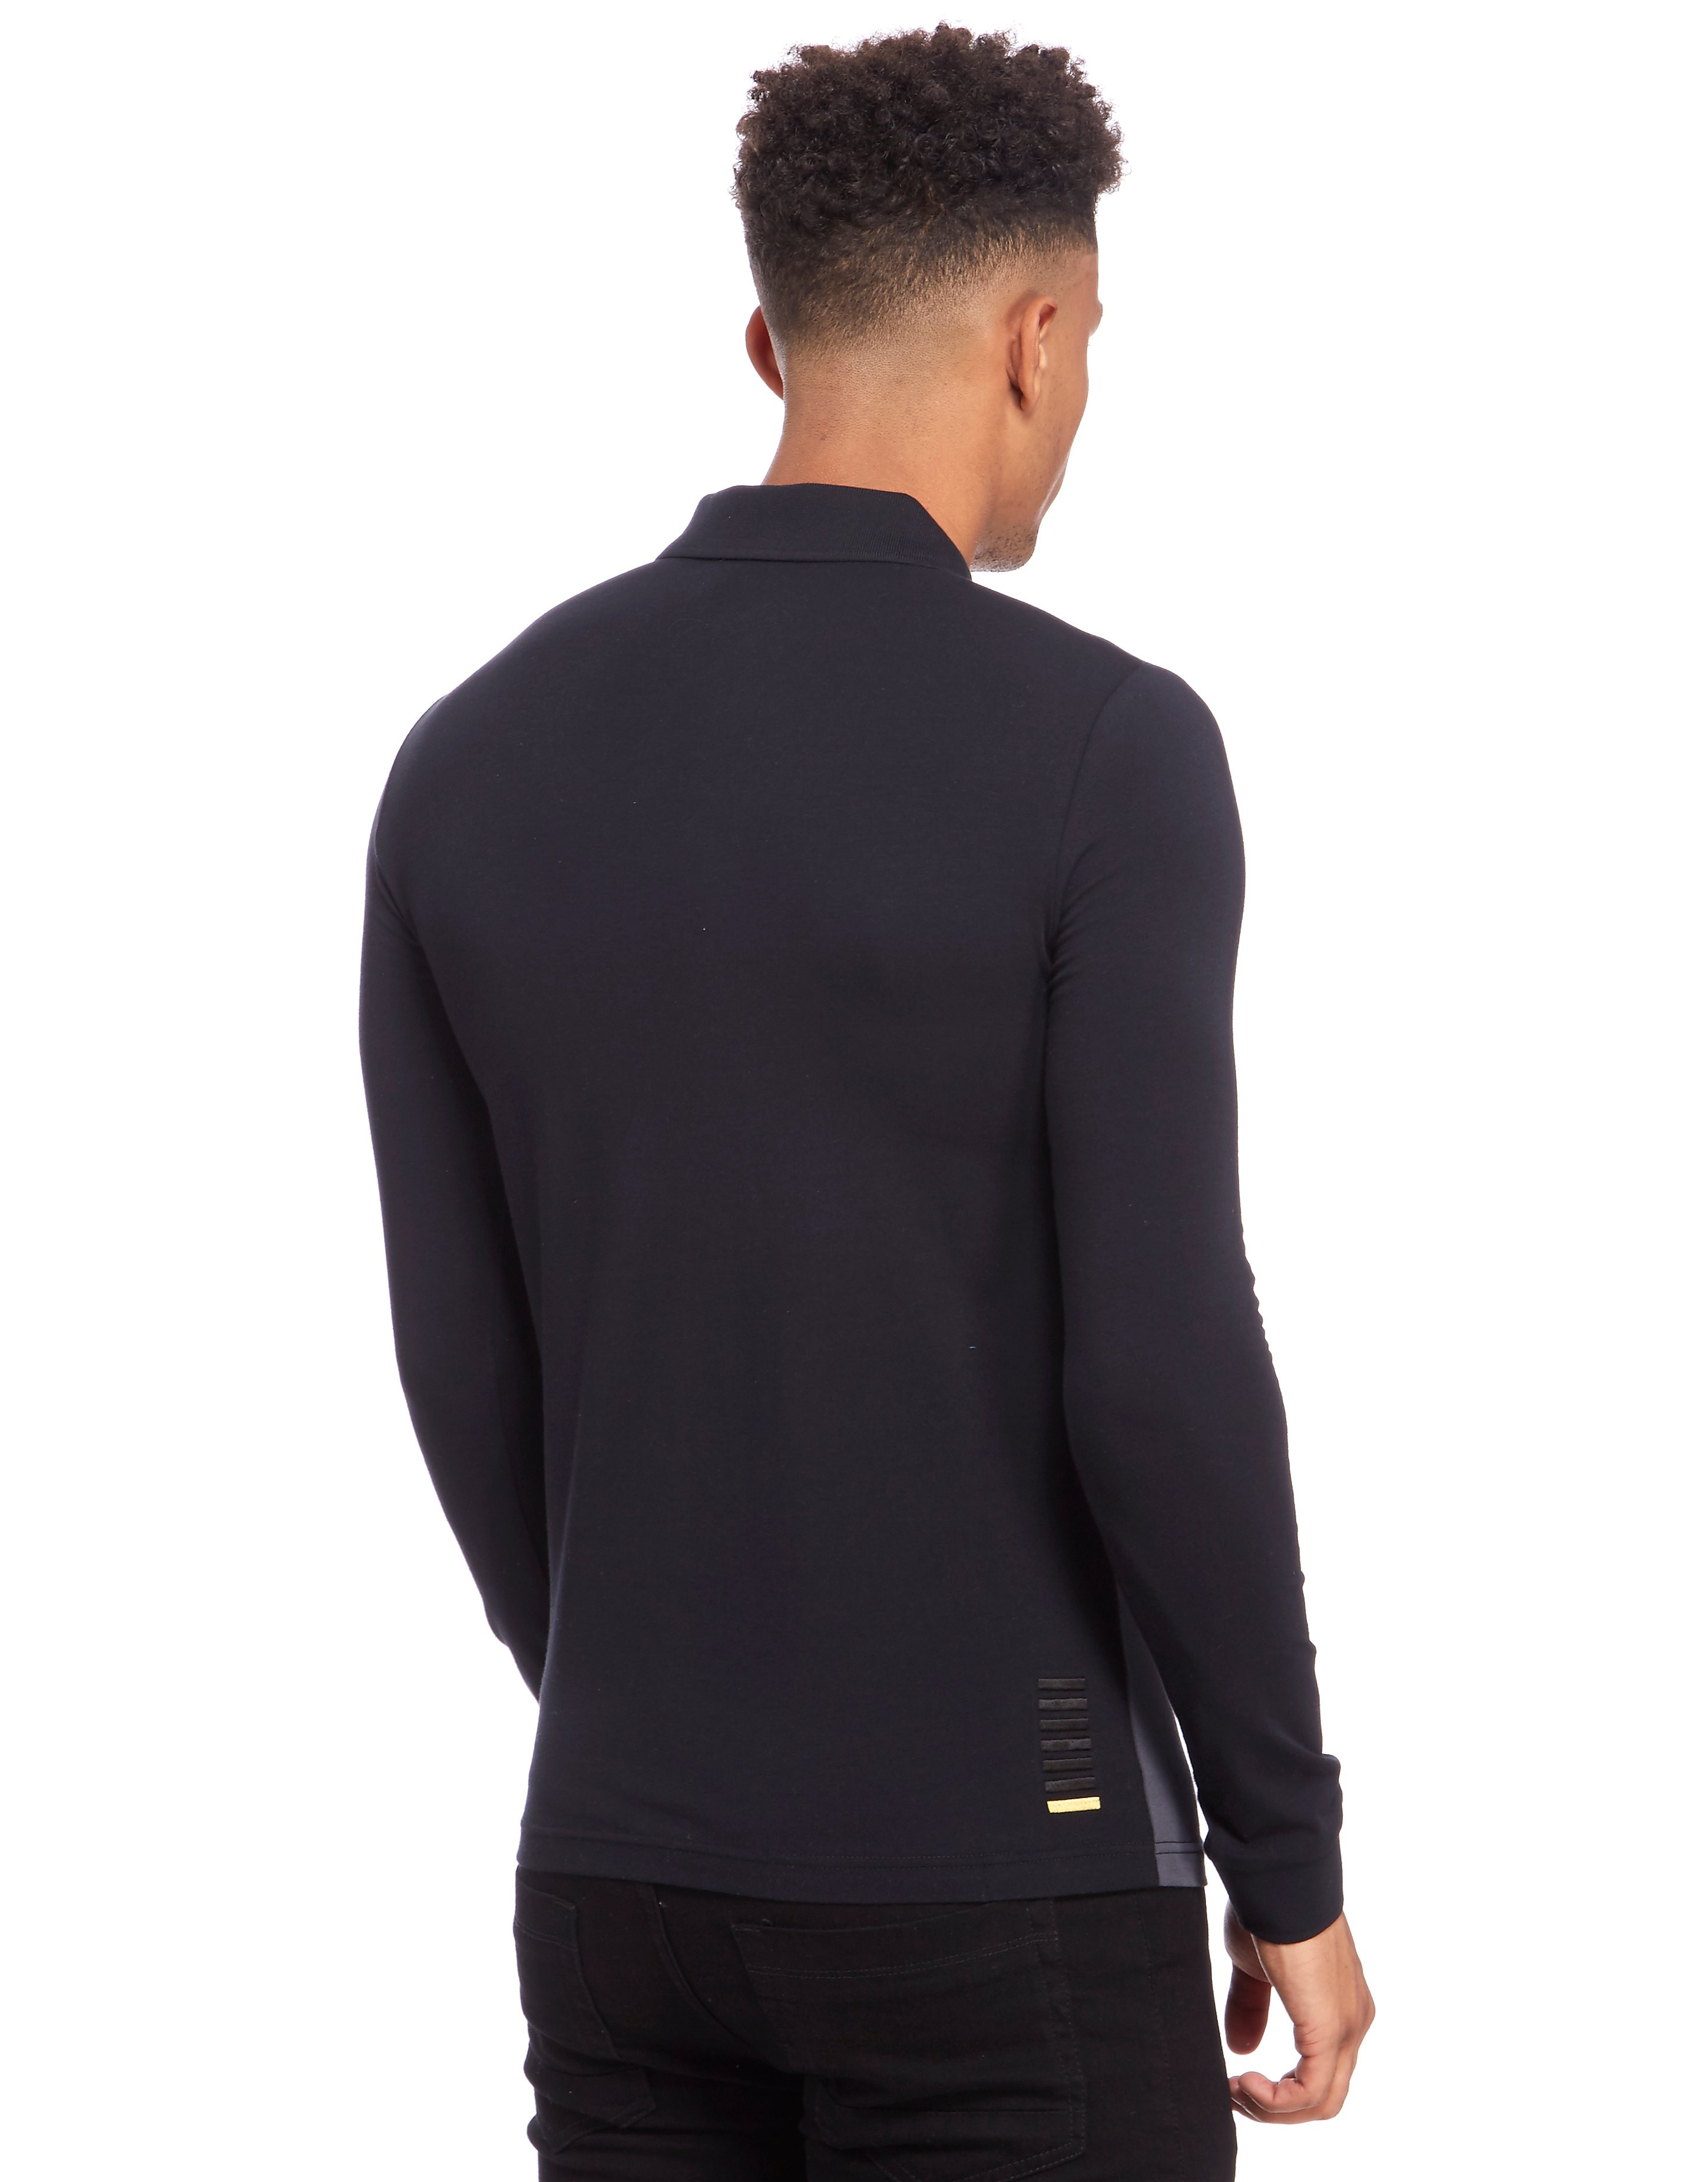 Emporio Armani EA7 Panel Block Longsleeve Polo Shirt